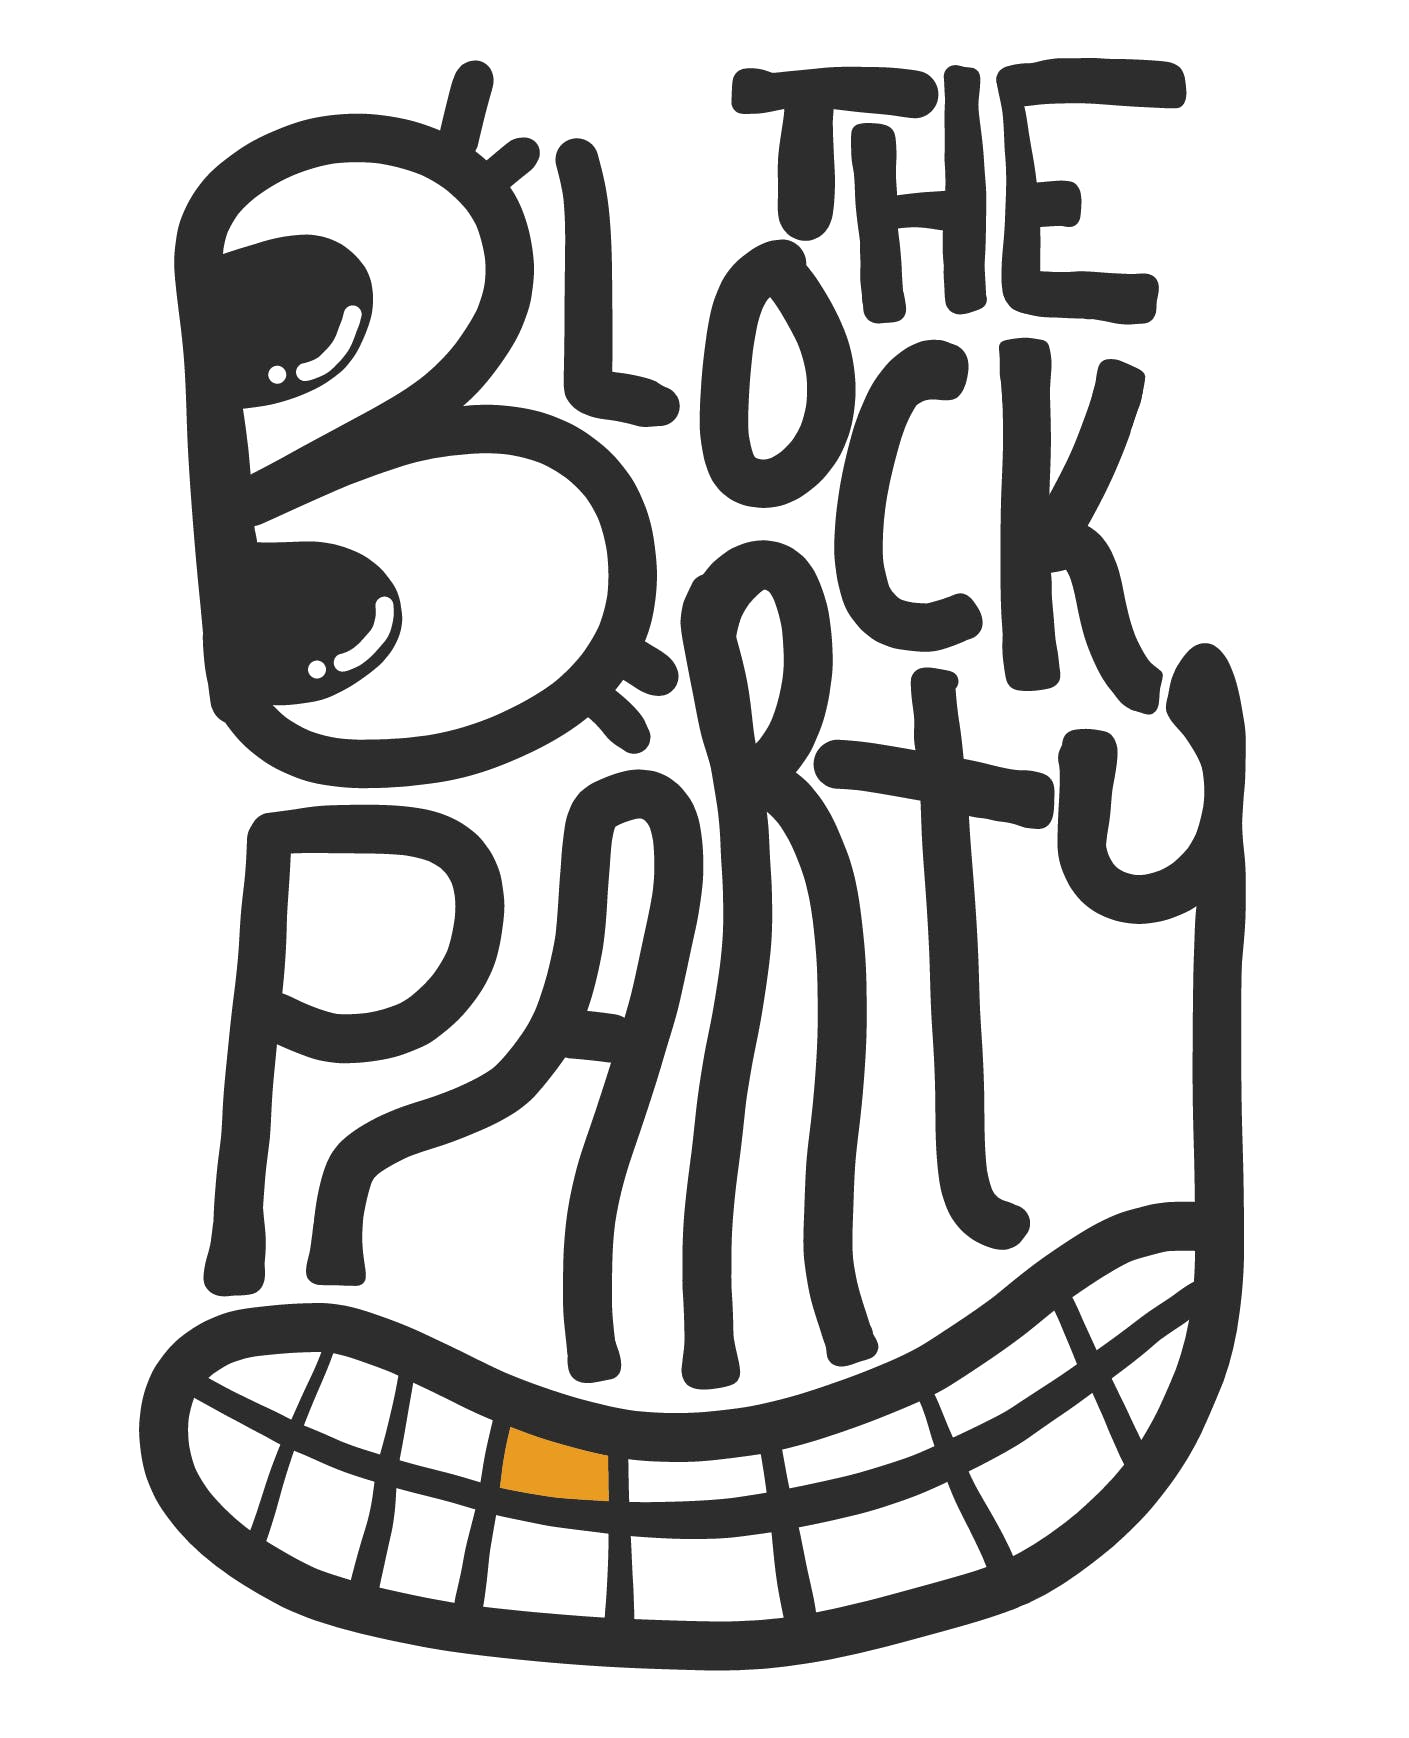 The Block Party